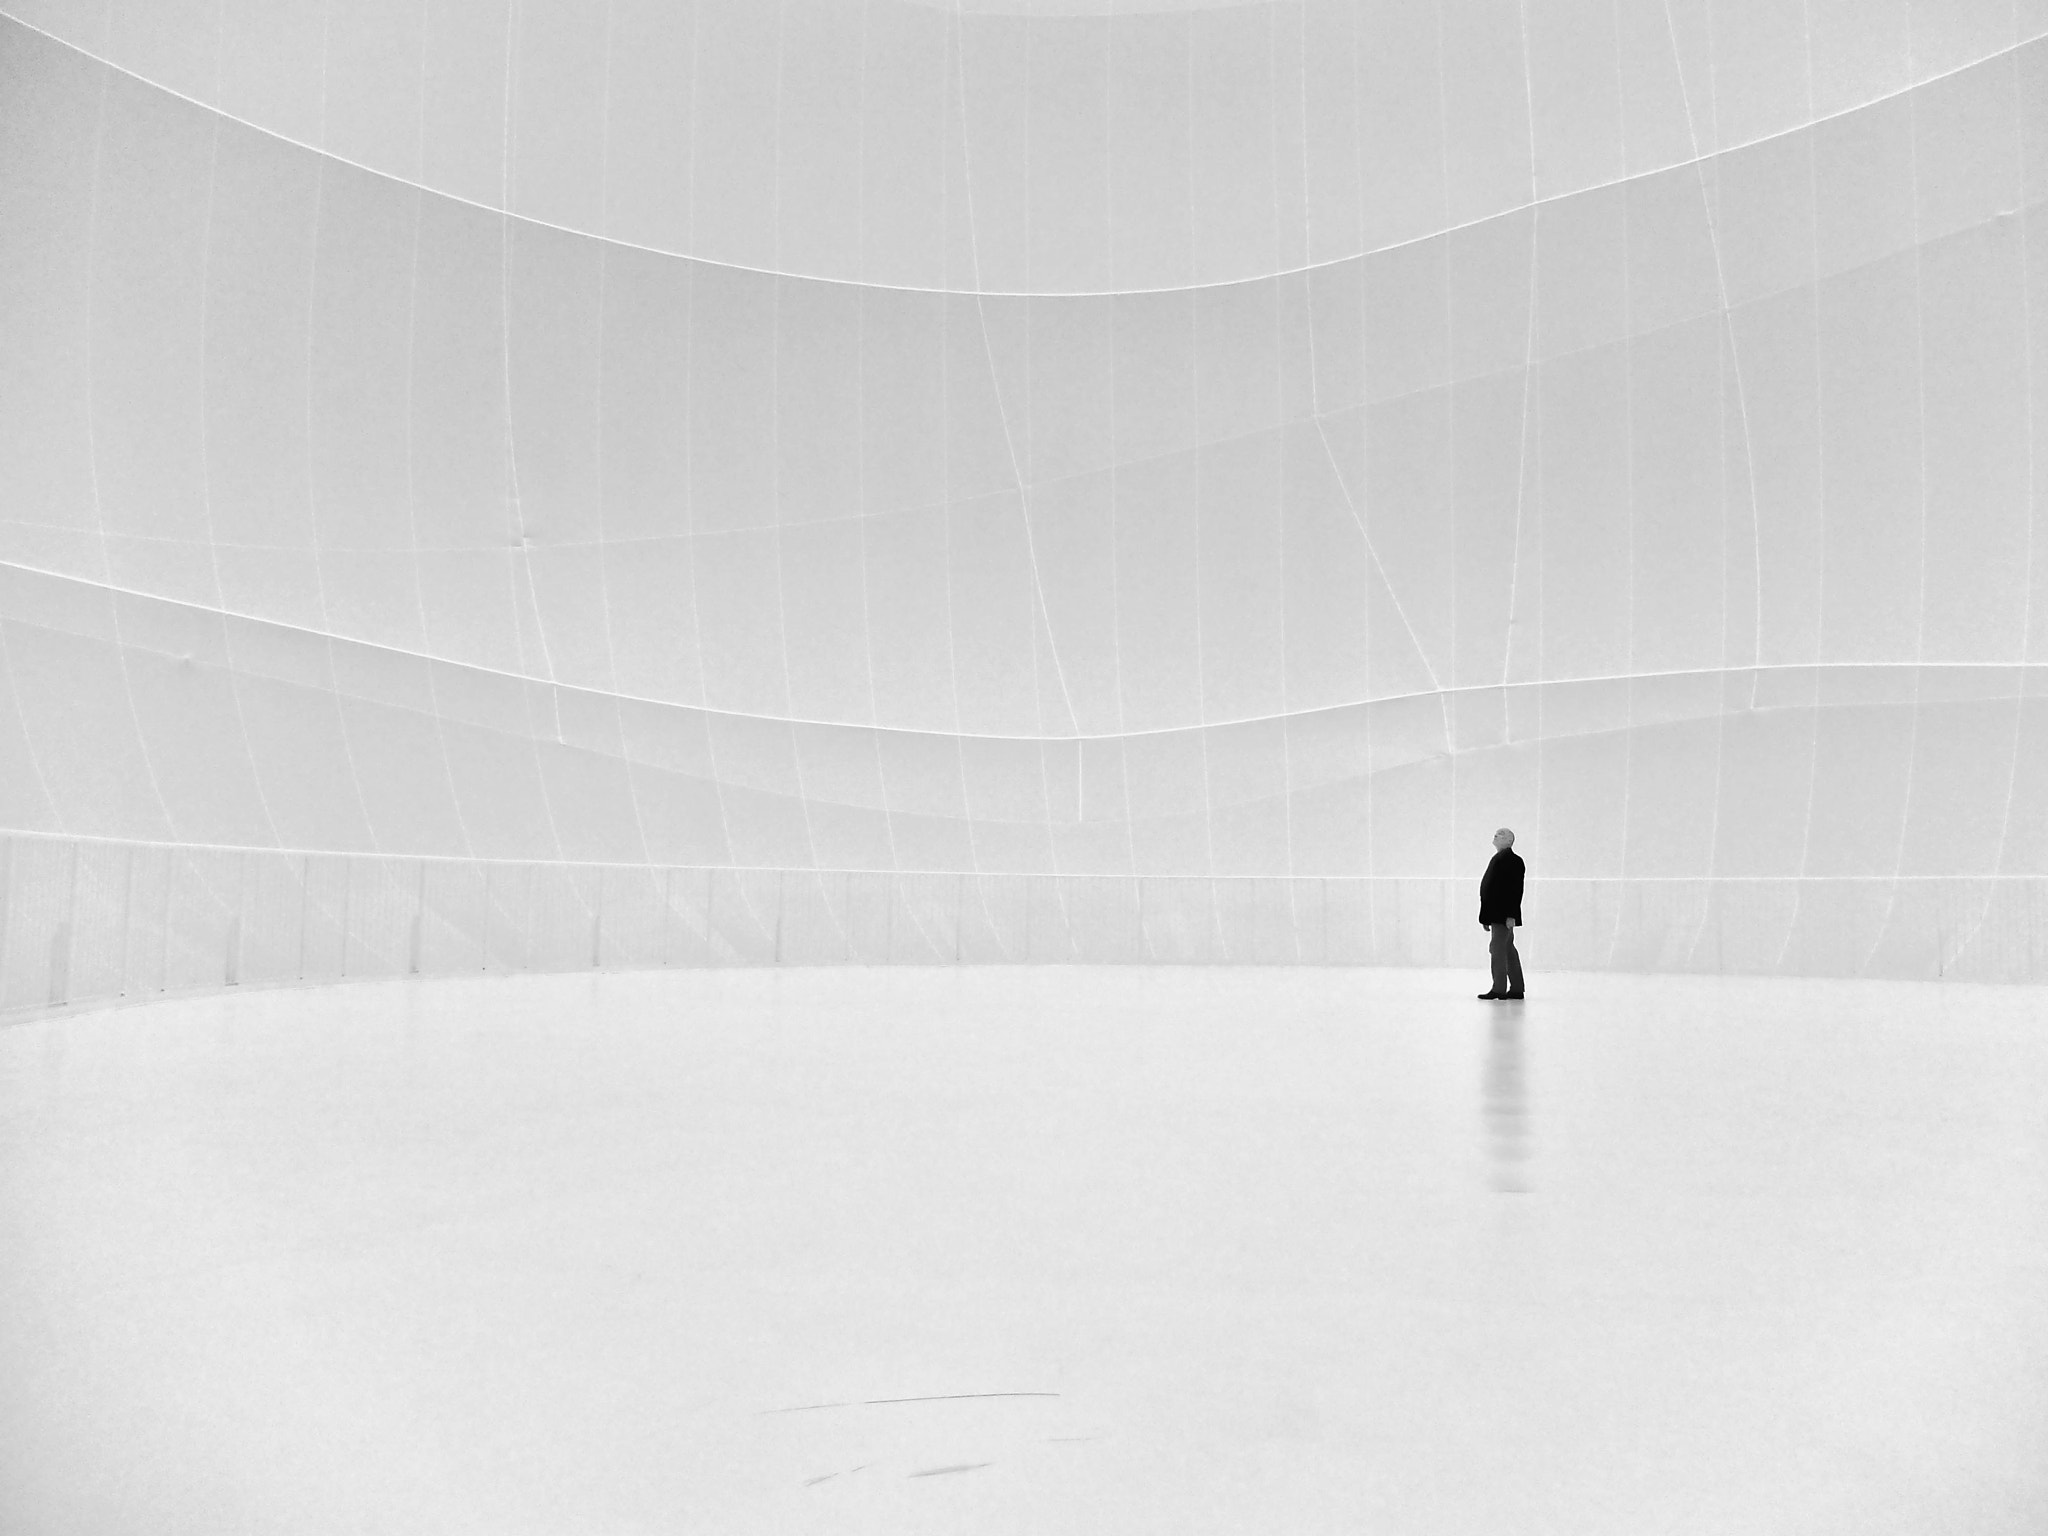 Photograph Lost in whiteness by Georgie Pauwels on 500px